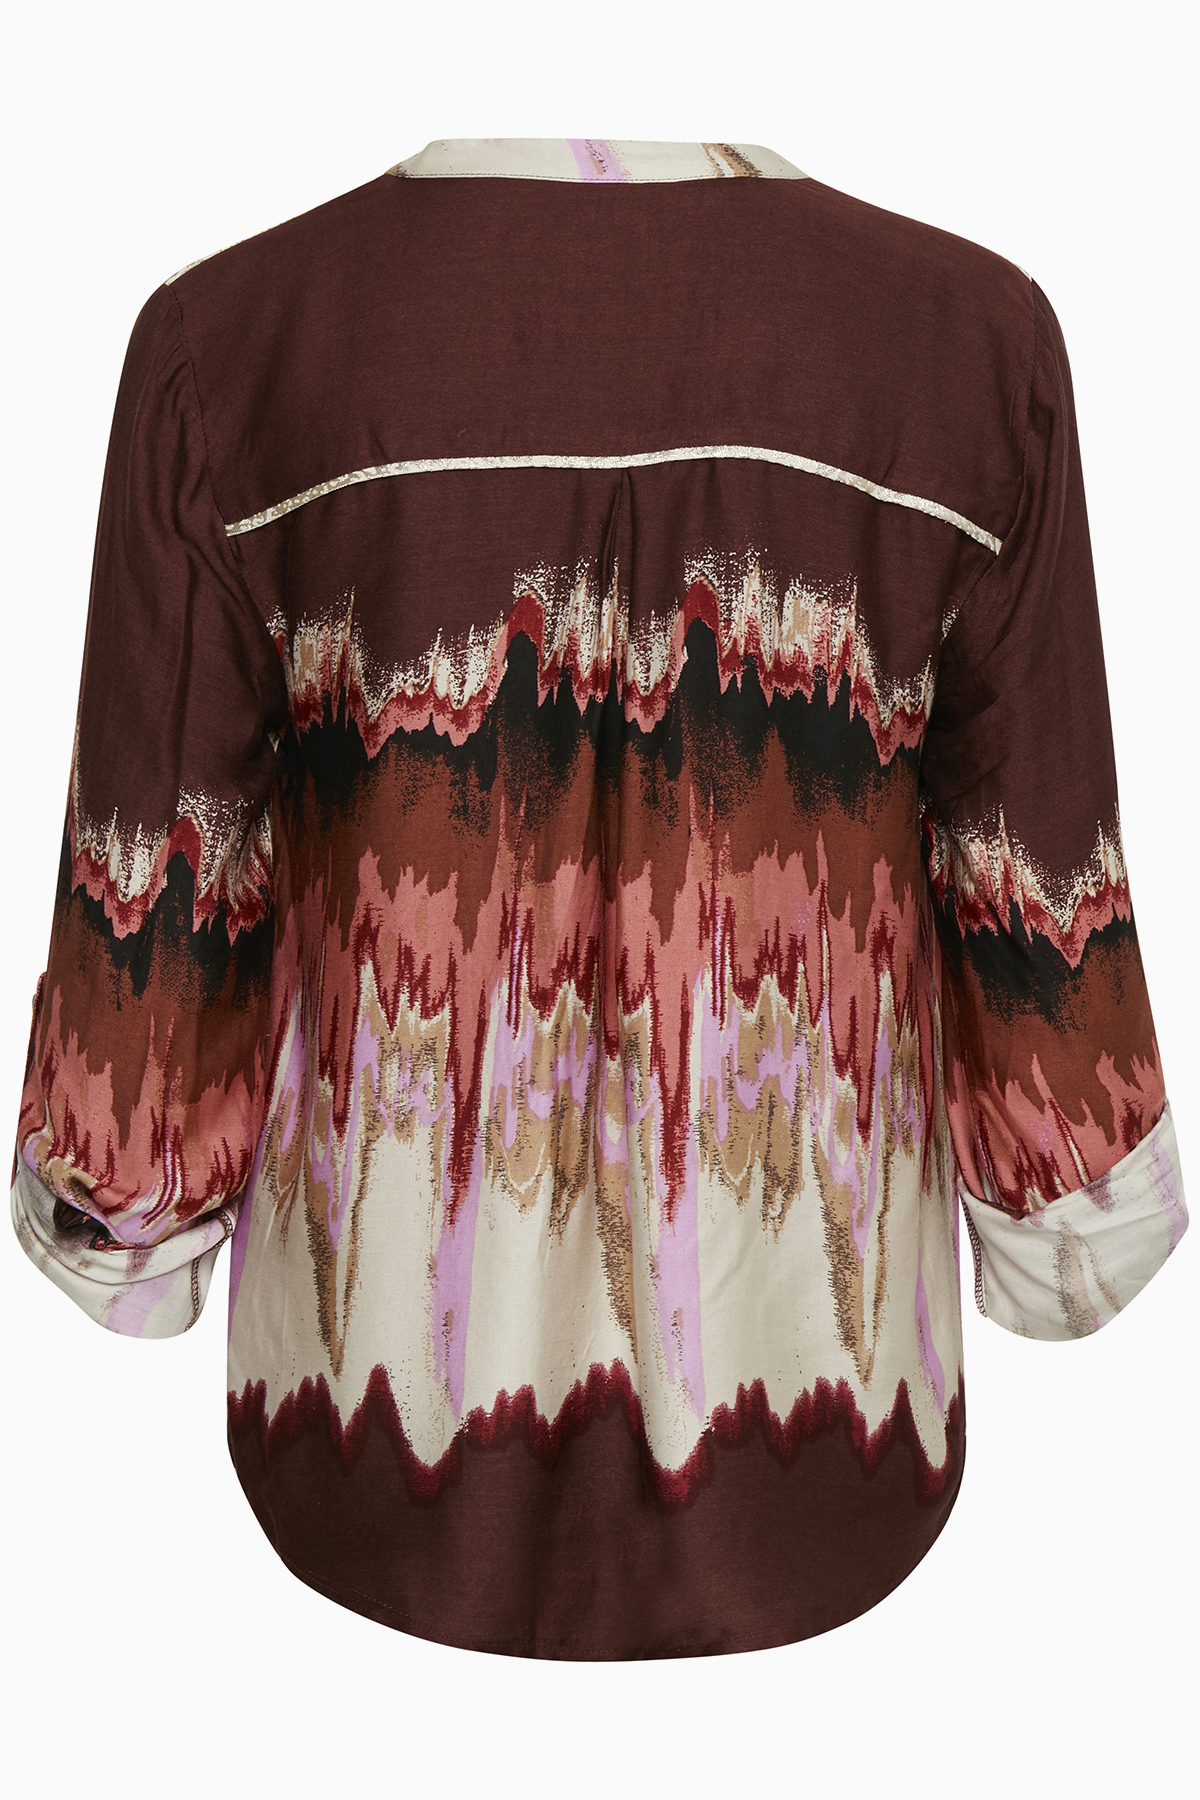 Image of Culture Dame Bluse - Bordeaux/off-white